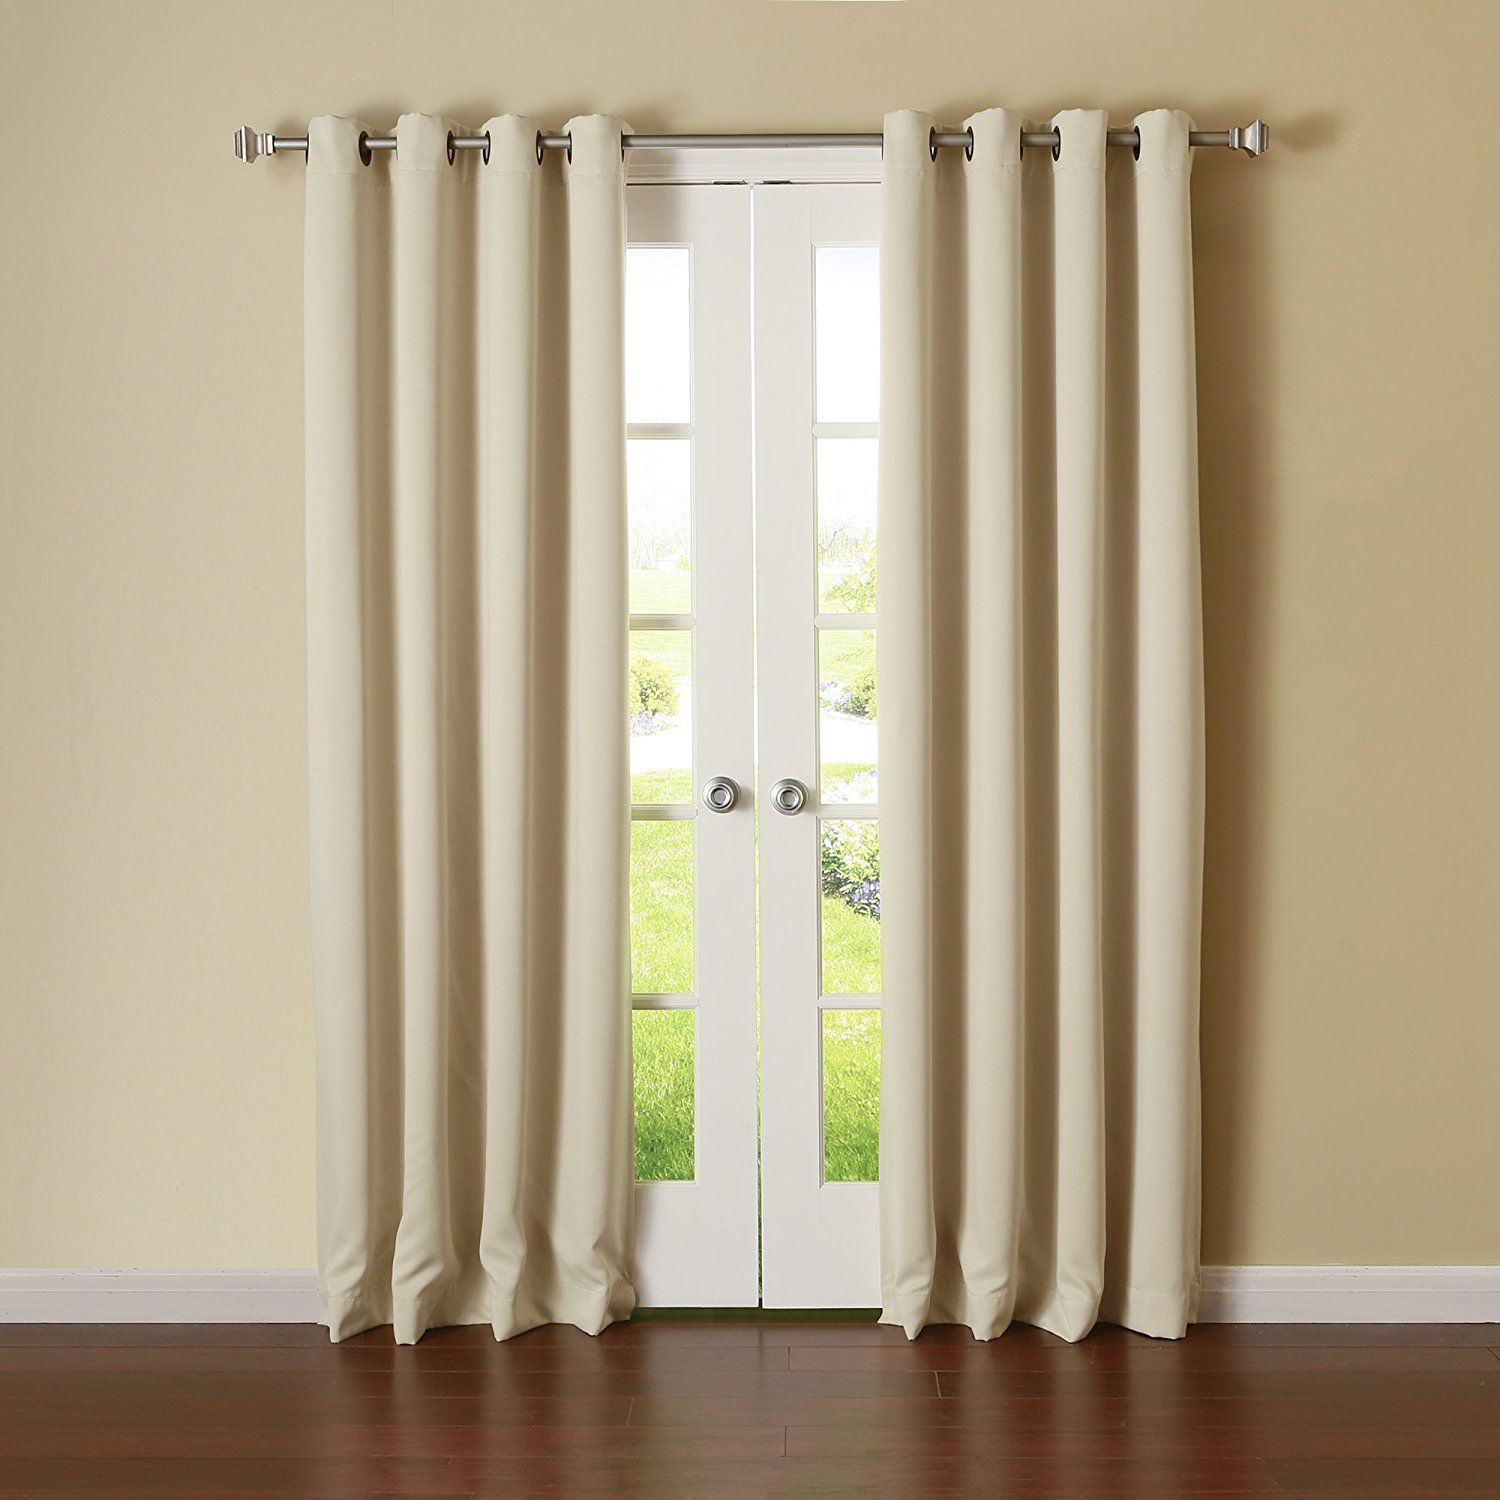 Exceptional Best Home Fashion Thermal Insulated Blackout Curtains   Antique Bronze  Grommet Top   Beige